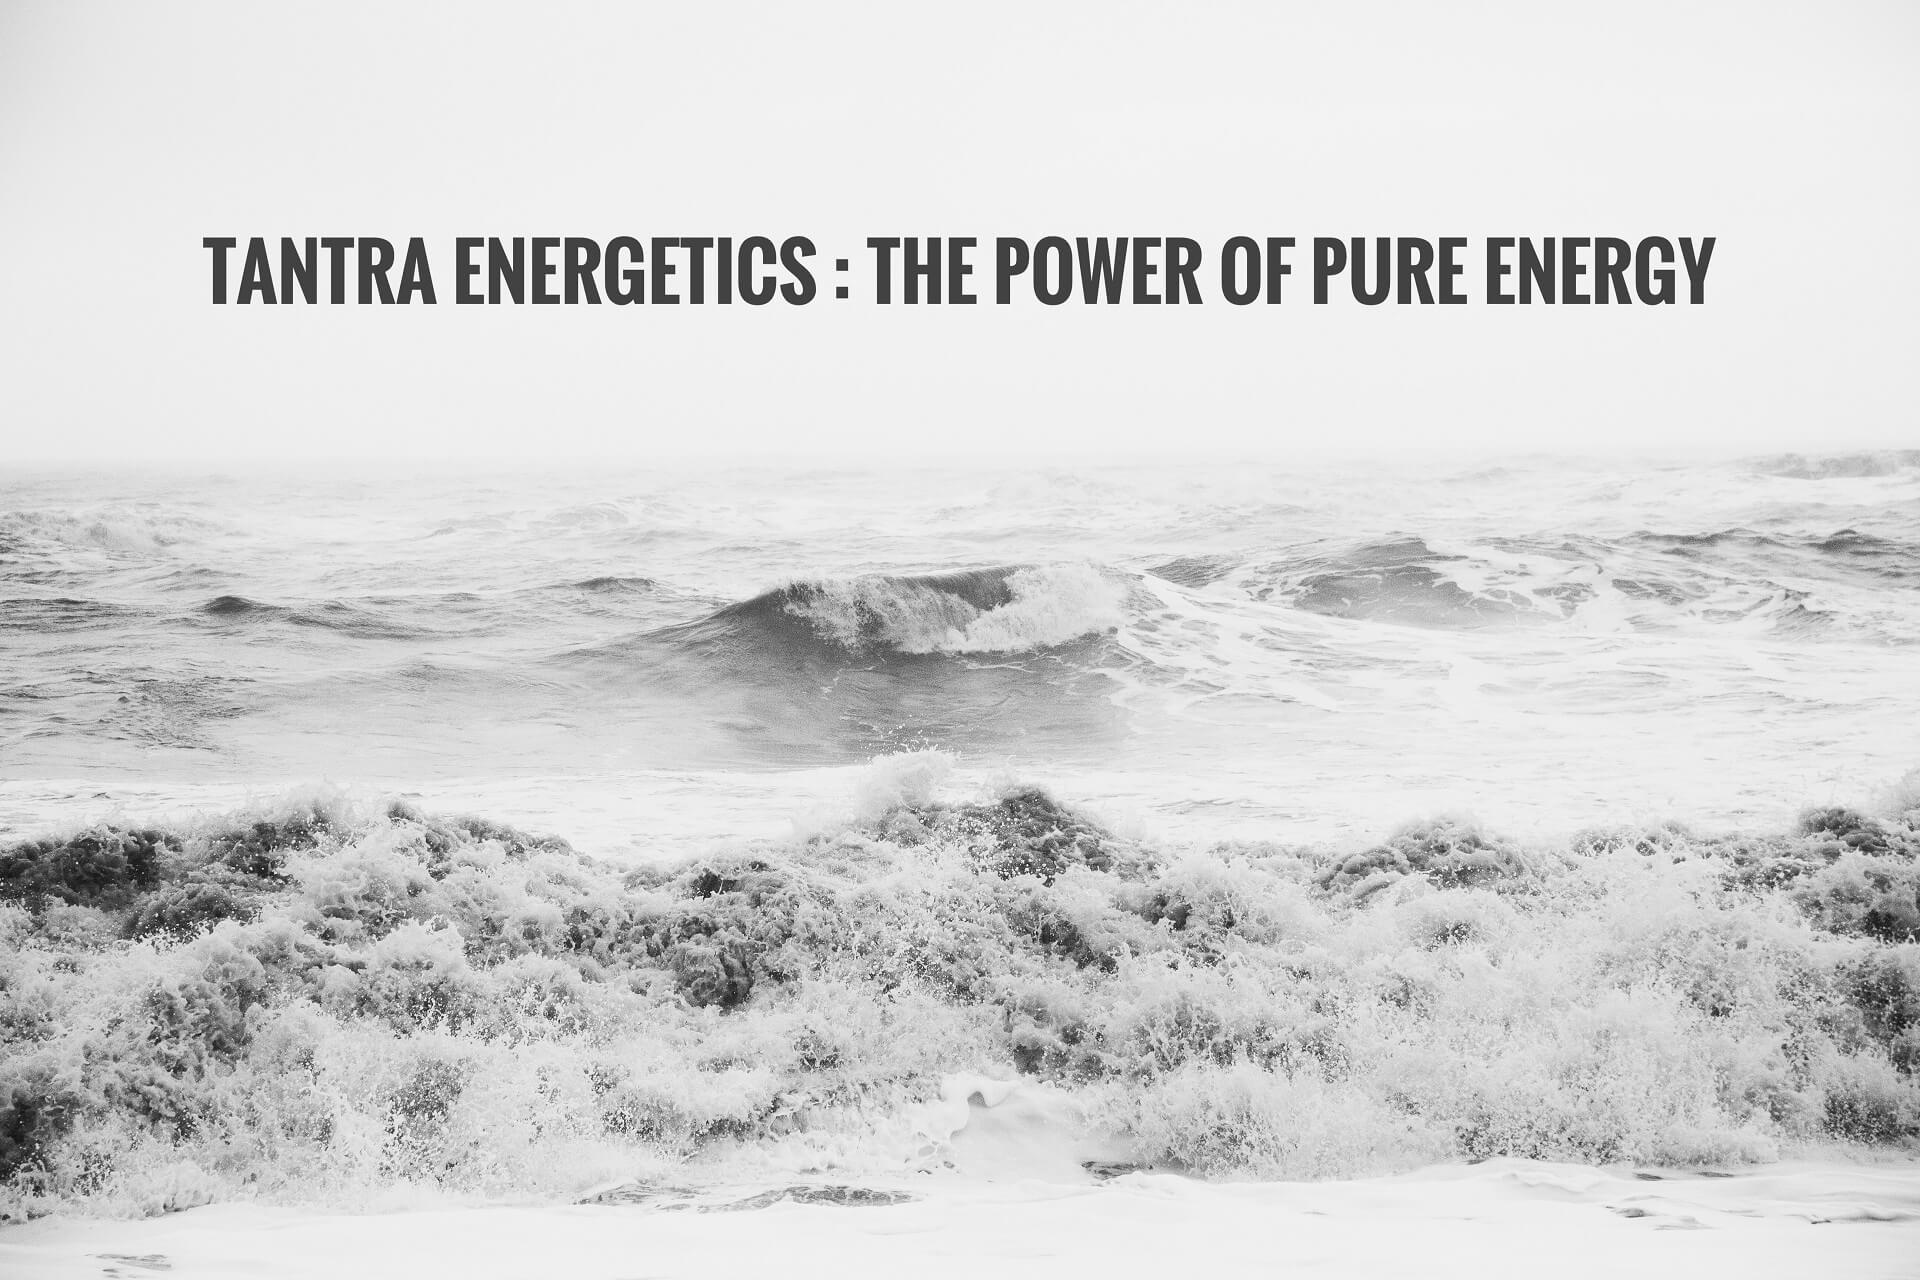 TANTRA ENERGETICS POWER